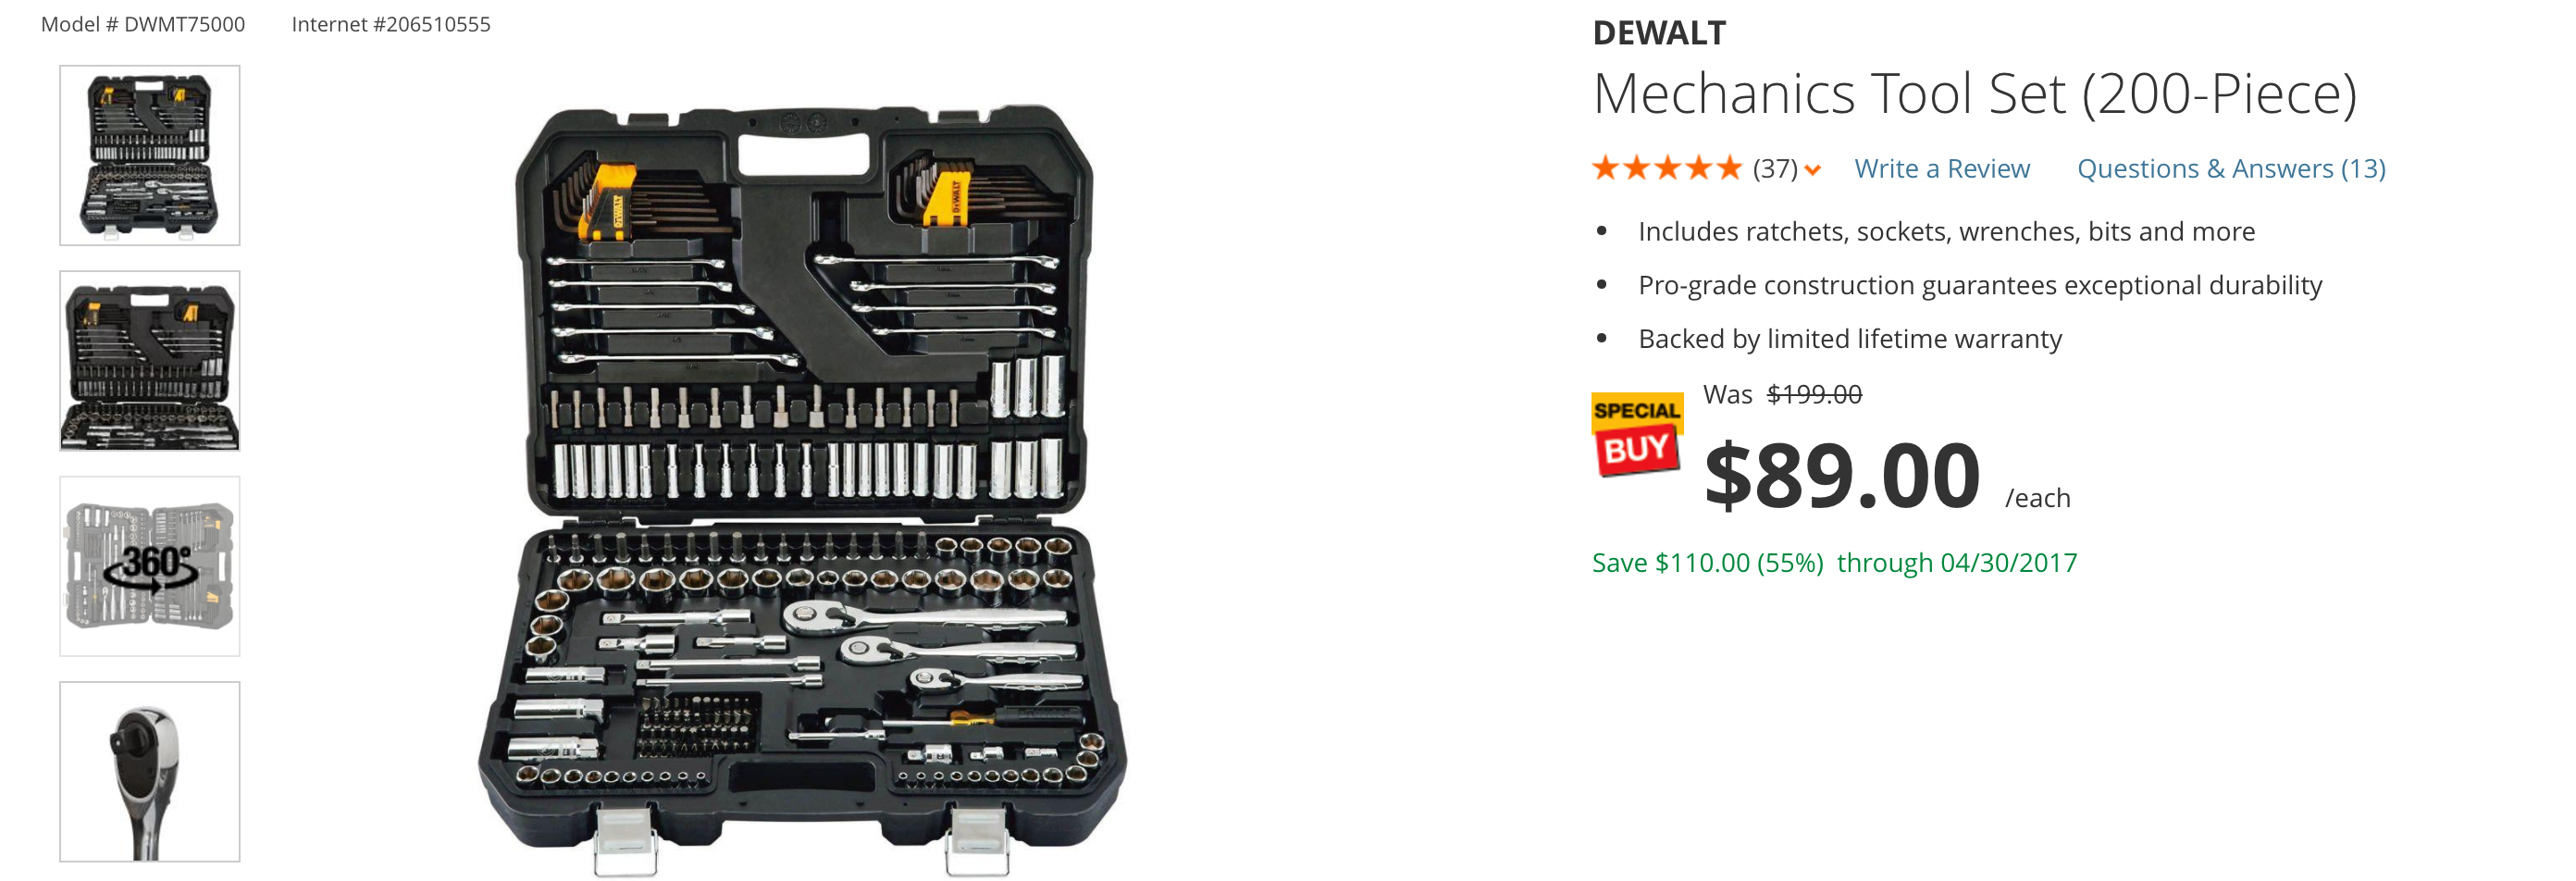 200-piece-dewalt-mechanics-tool-set-2